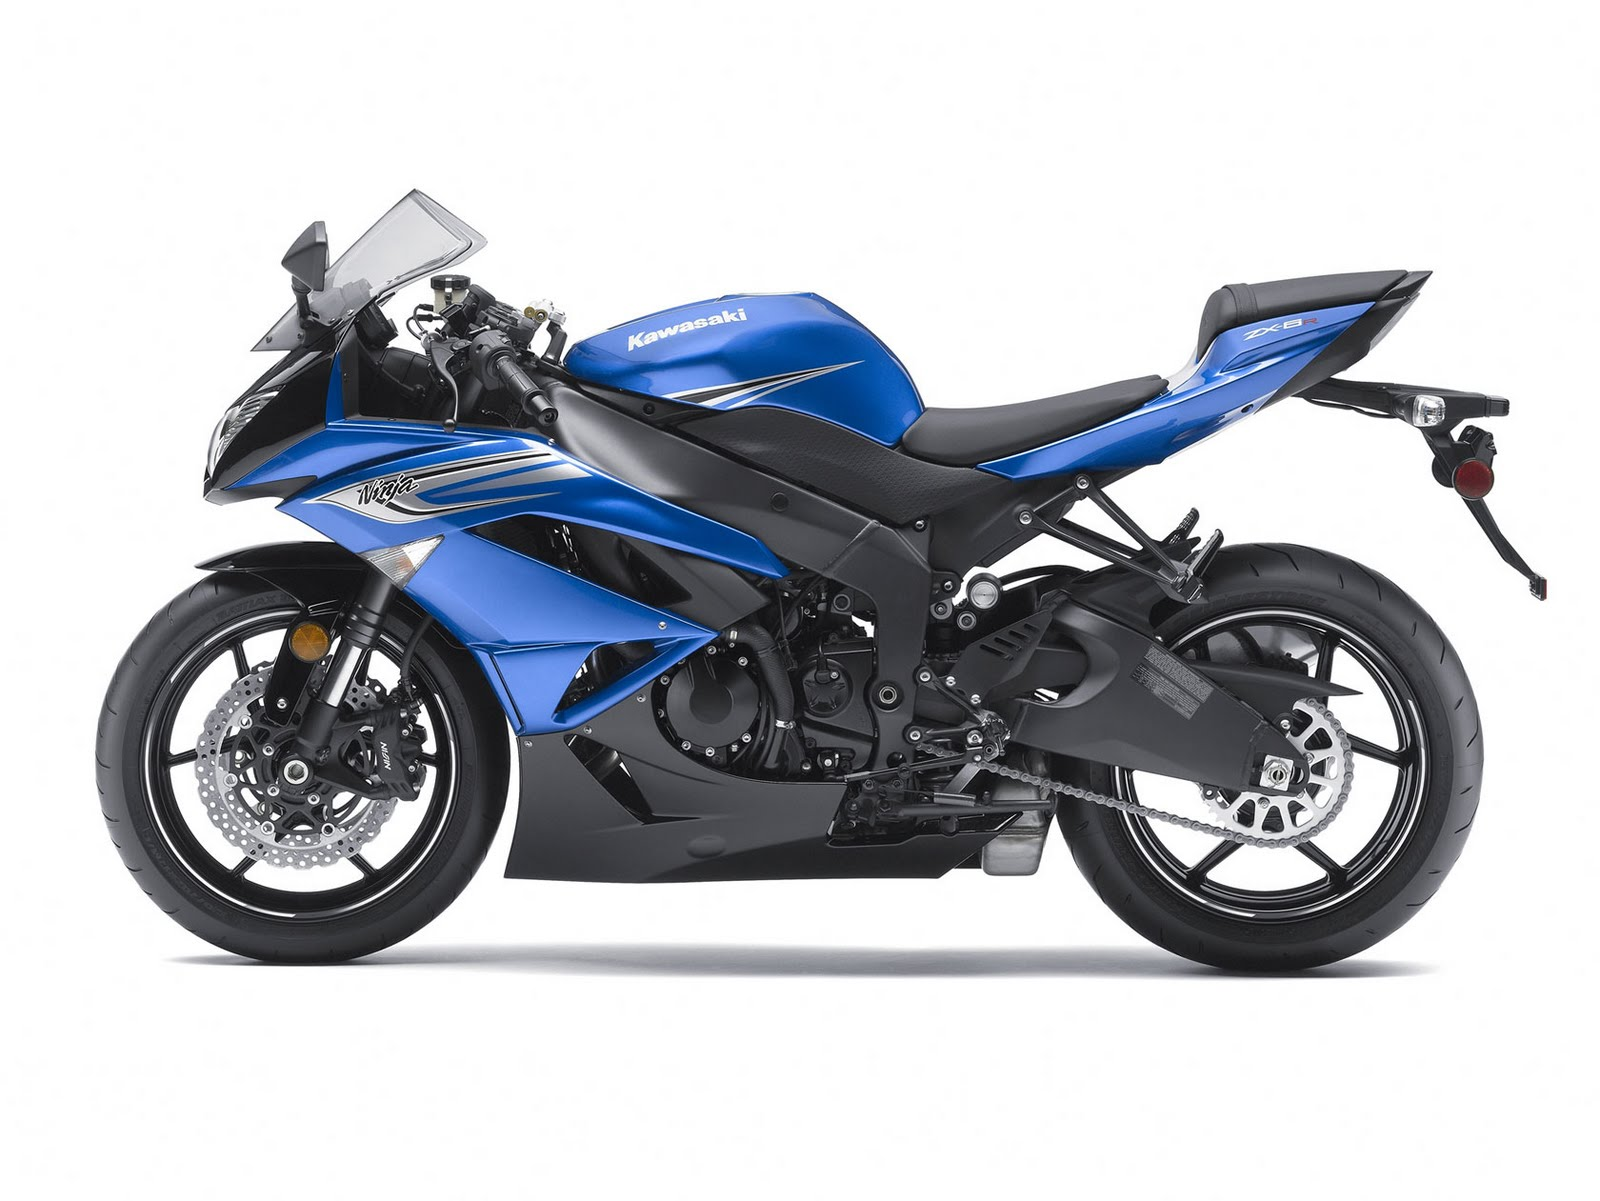 kawasaki ninja zx 6r blue wallpapers - Kawasaki Ninja ZX 6R Blue Wallpapers HD Wallpapers